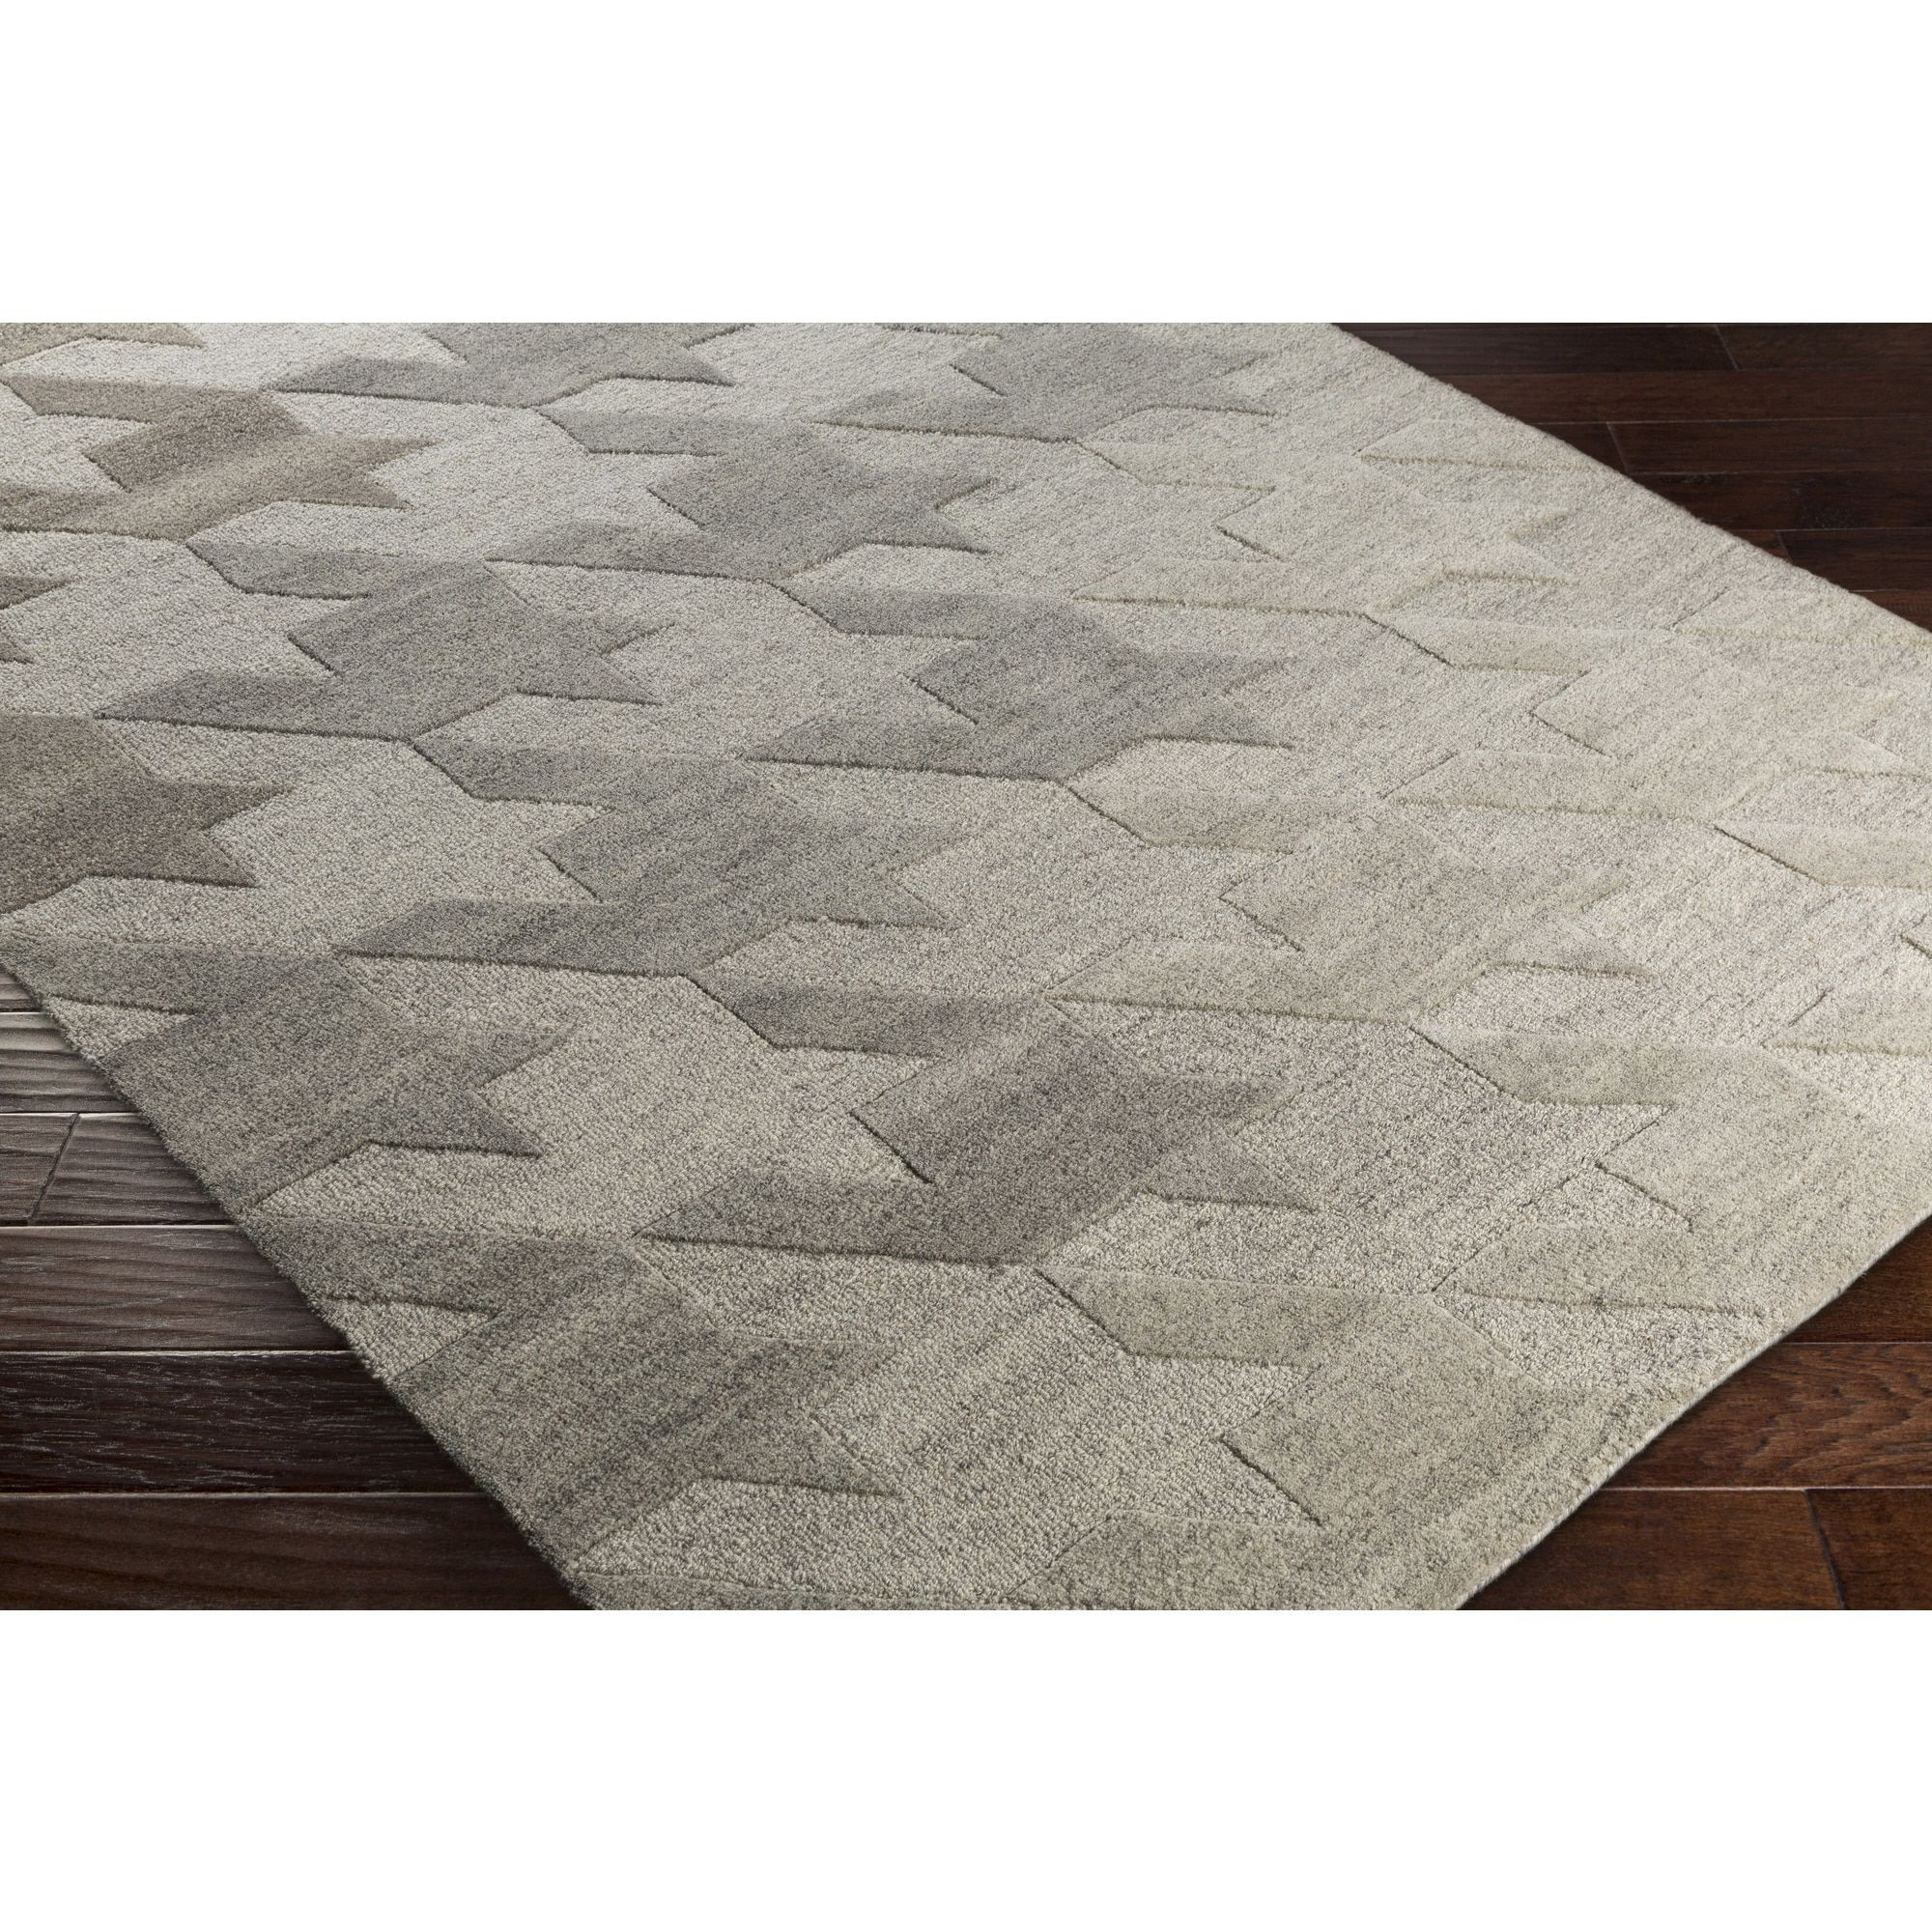 Hand Tufted Angselle Wool Rug 8 X 10 Grey Size 8 X 10